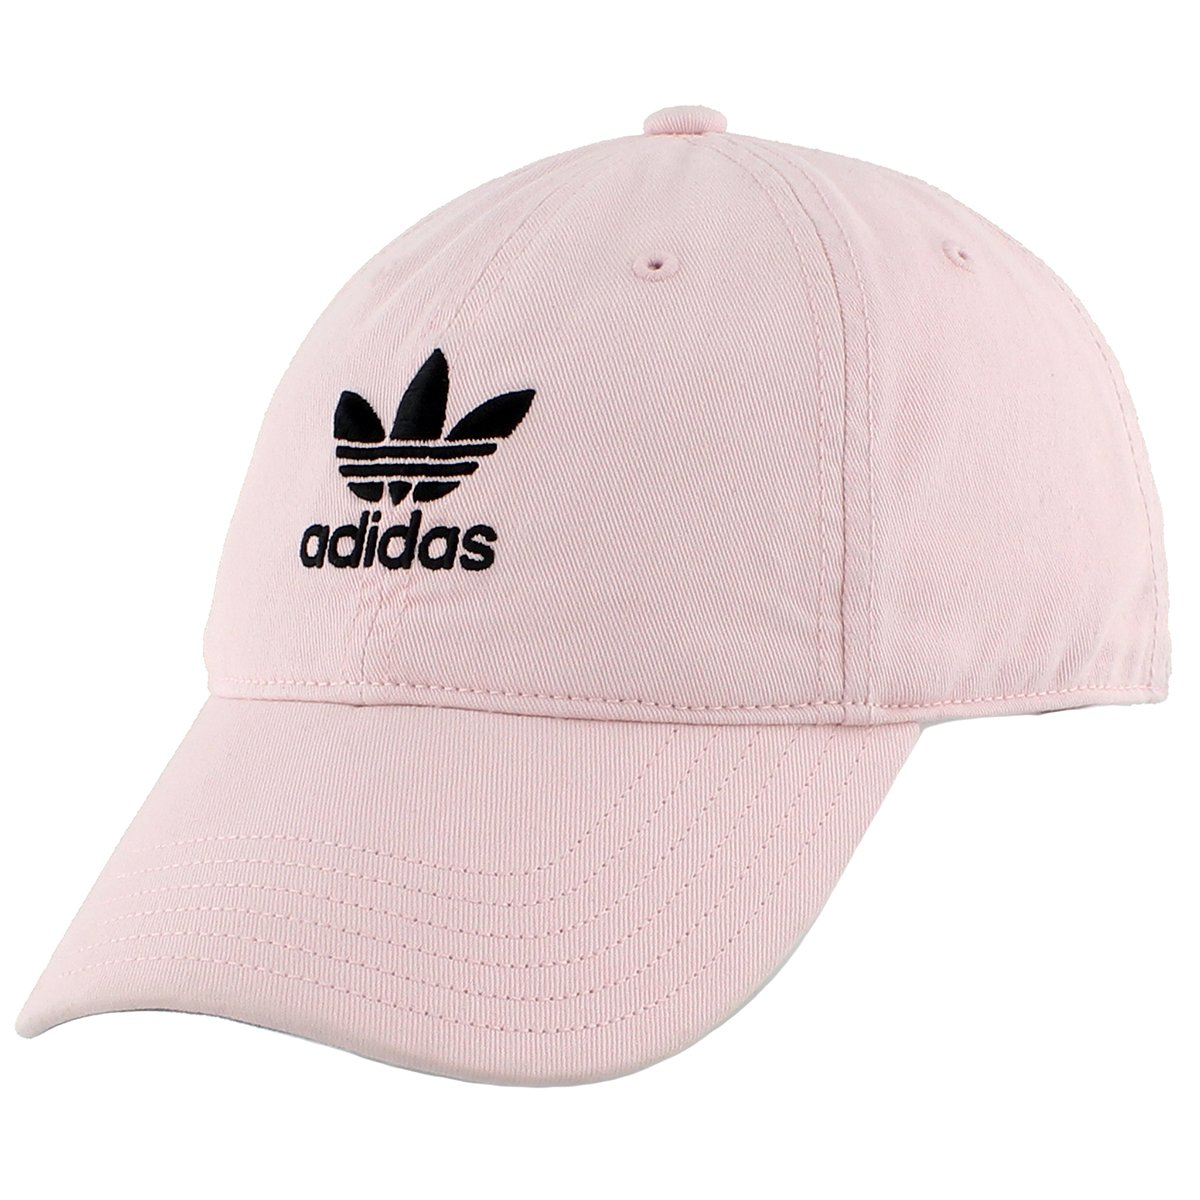 adidas Men's Originals Relaxed Strapback Cap, Clear Pink/Black, One Size